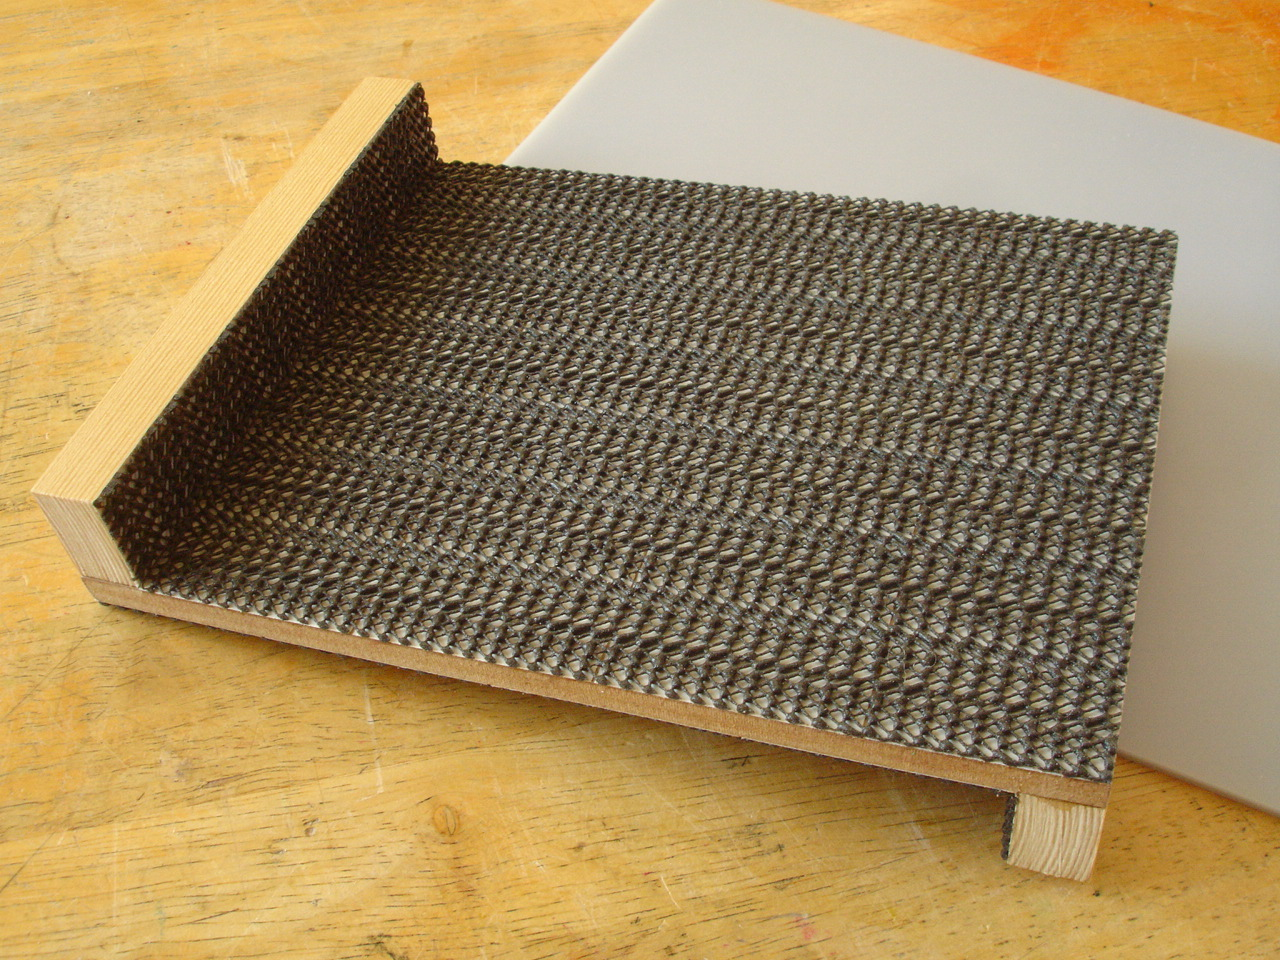 bench hook with grip cladding